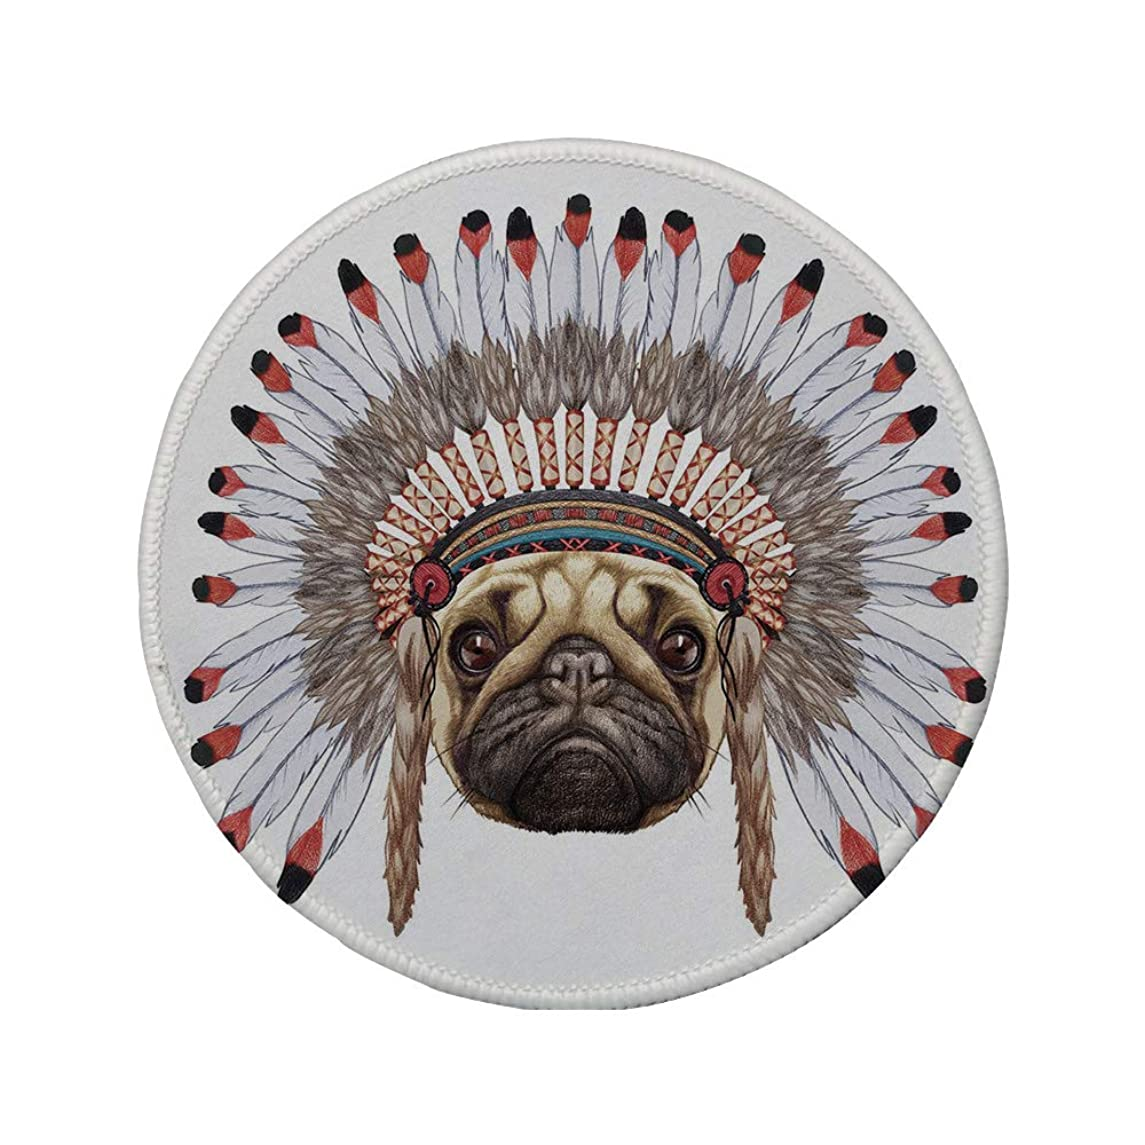 Non-Slip Rubber Round Mouse Pad,Pug,Portrait of a Dog as a Native with War Bonnet Hand Drawn Illustration of Fun Animals Decorative,Red Black Tan,11.8